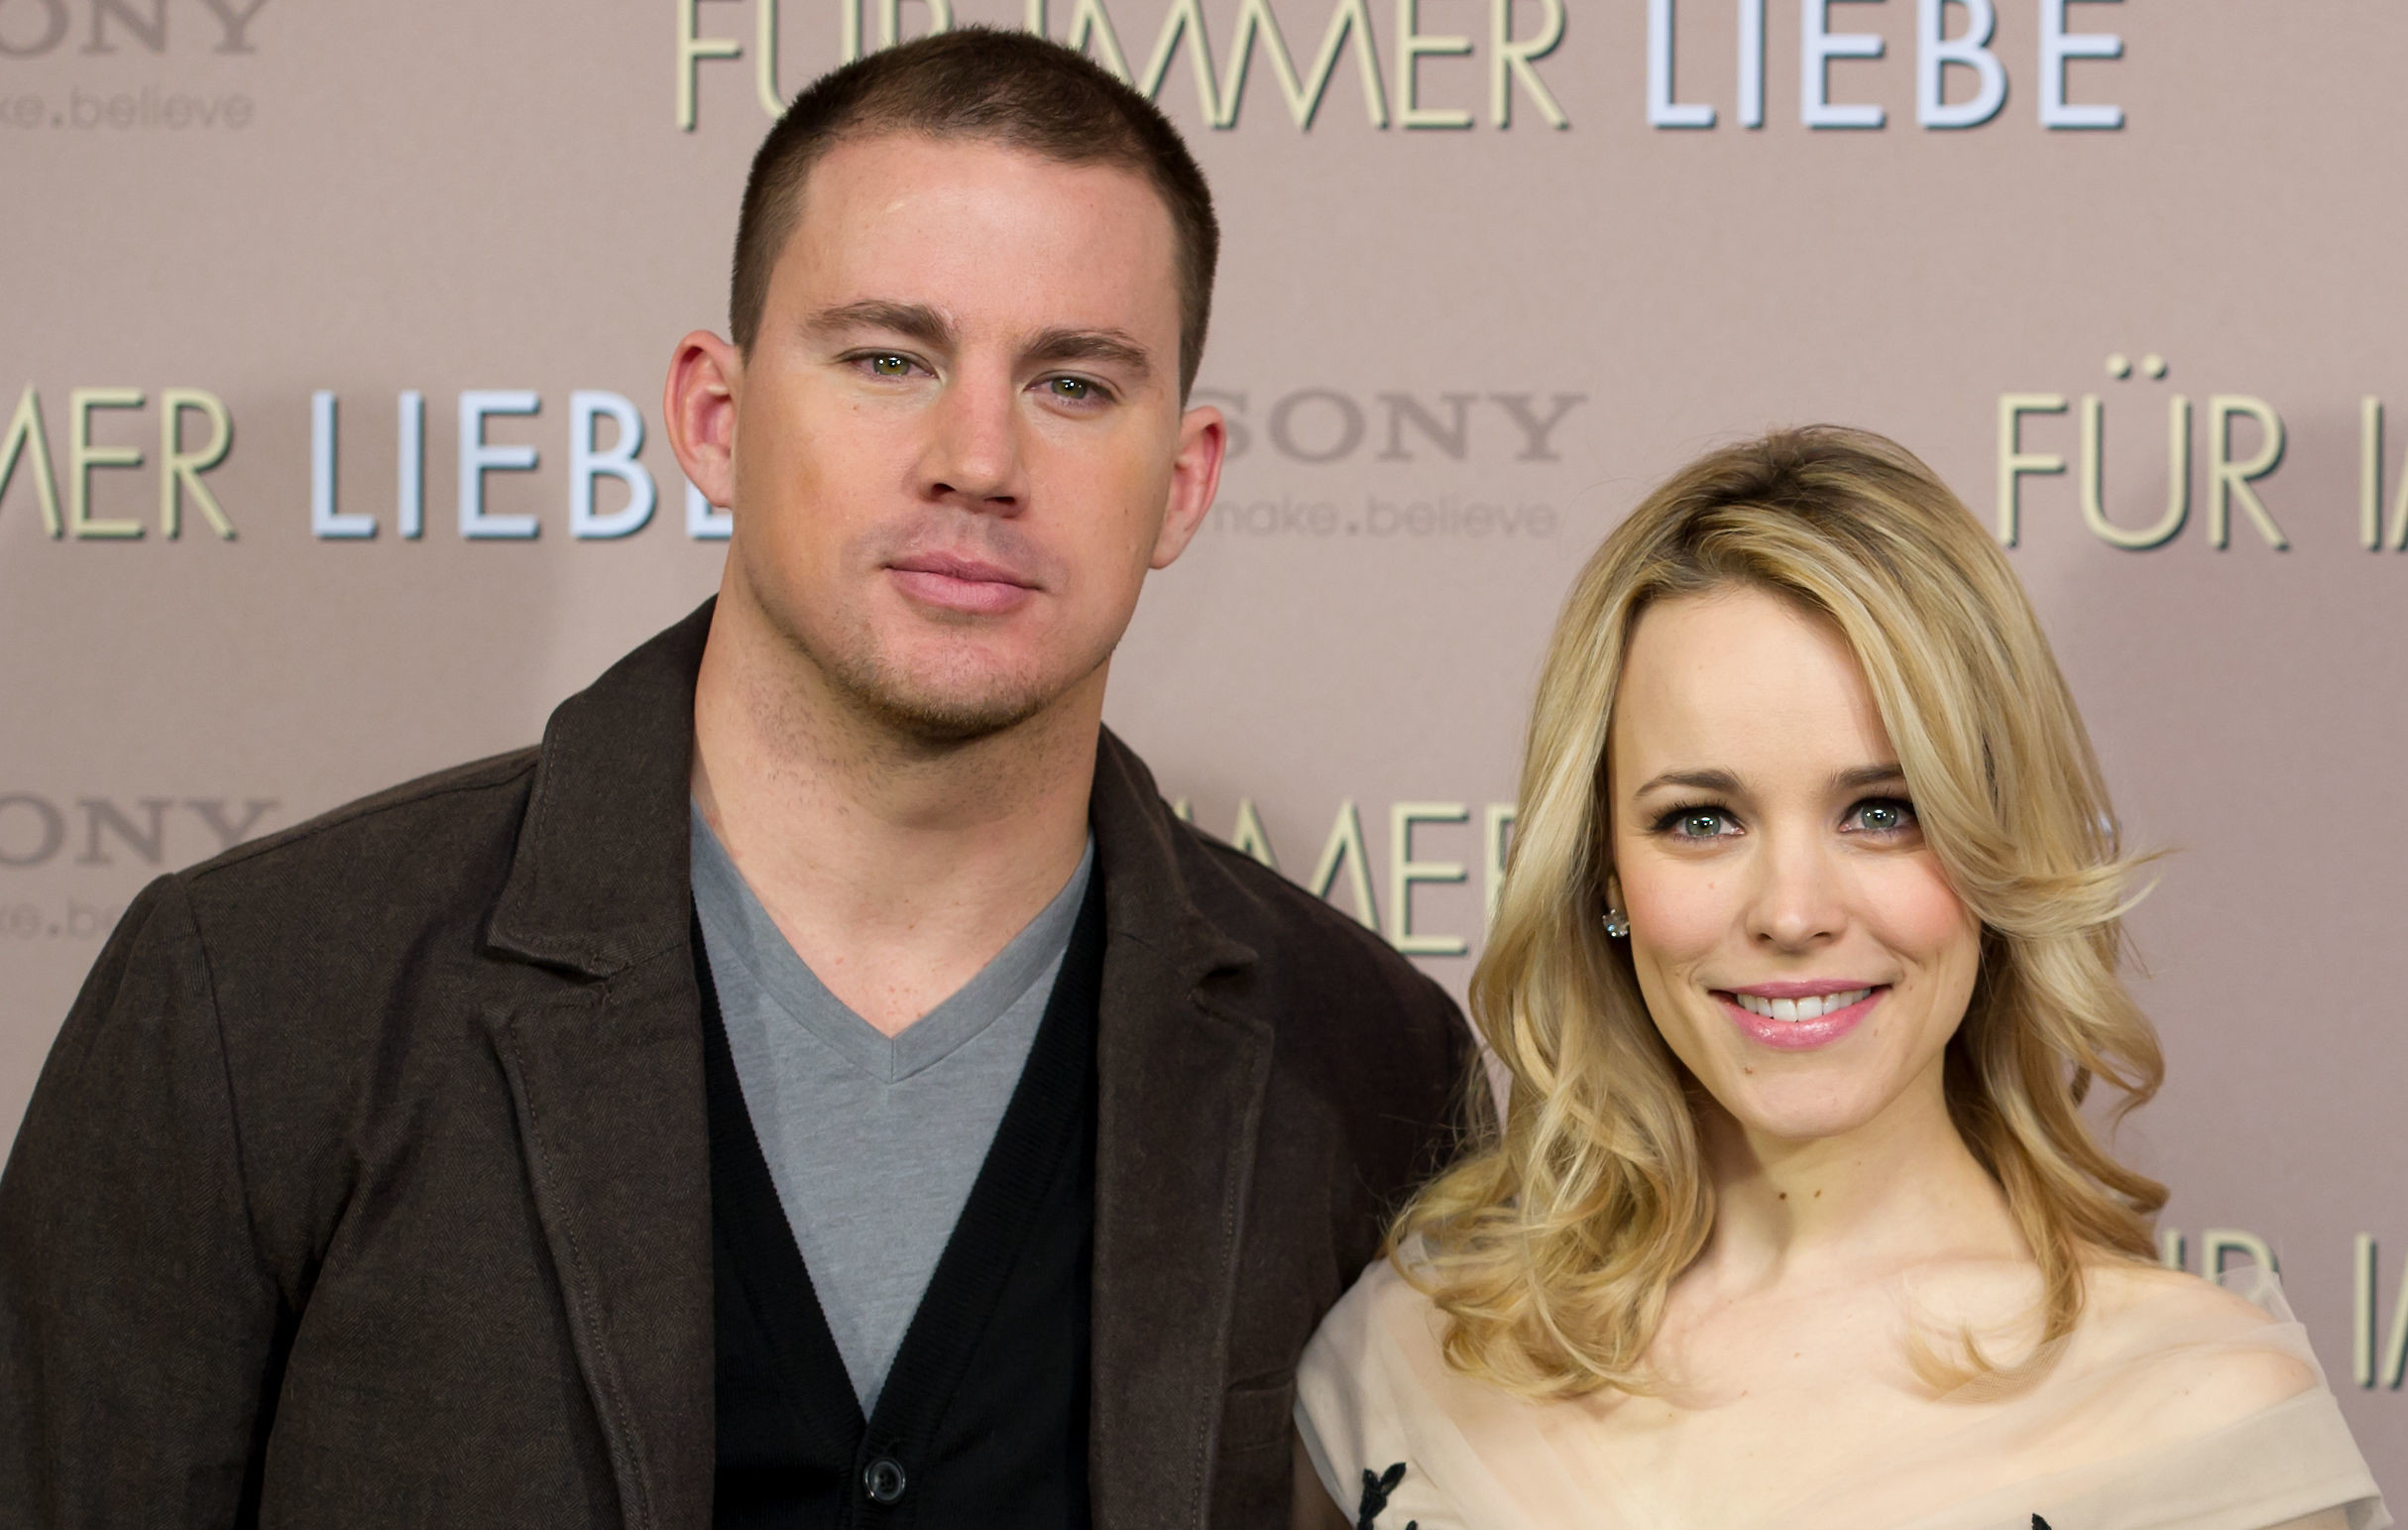 2429x1543 Channing Tatum images Channing Tatum And Rachel McAdams HD wallpaper and  background photos